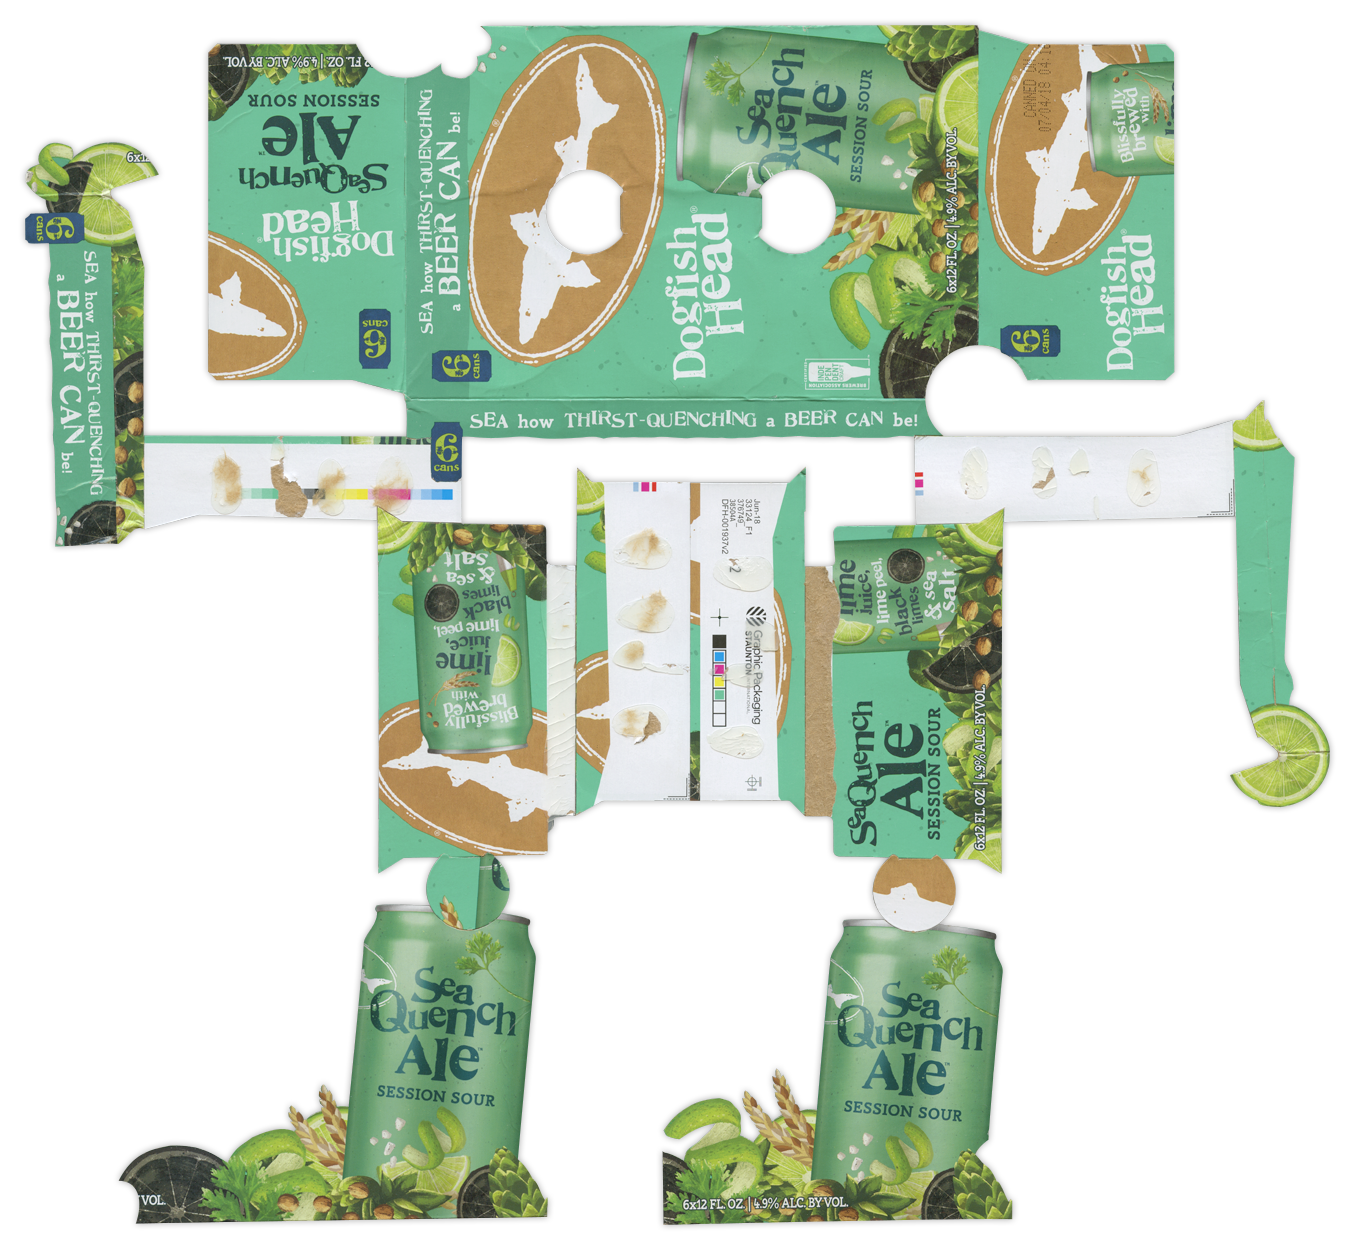 Dogfish Sea Quench Ale BoxBot